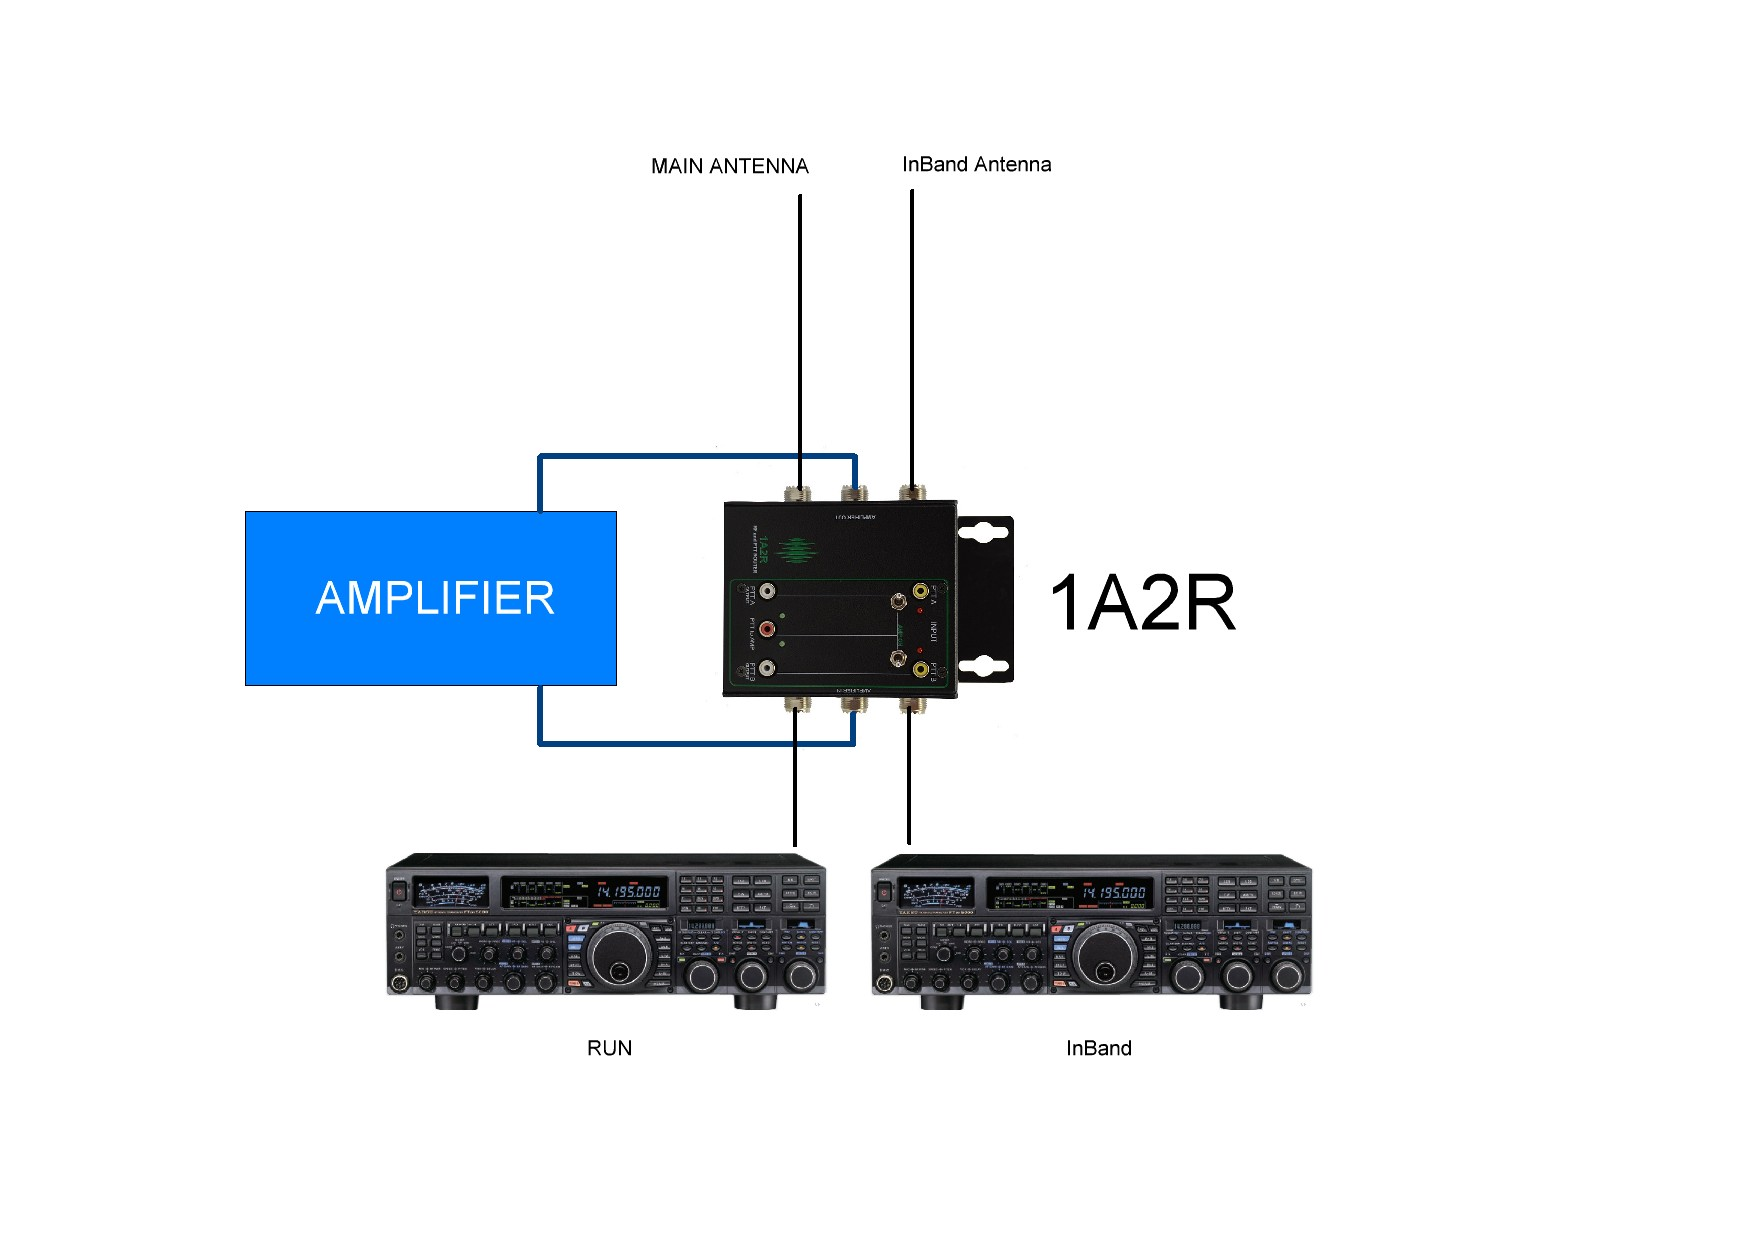 In Band with 1A2R and single AMP two radios